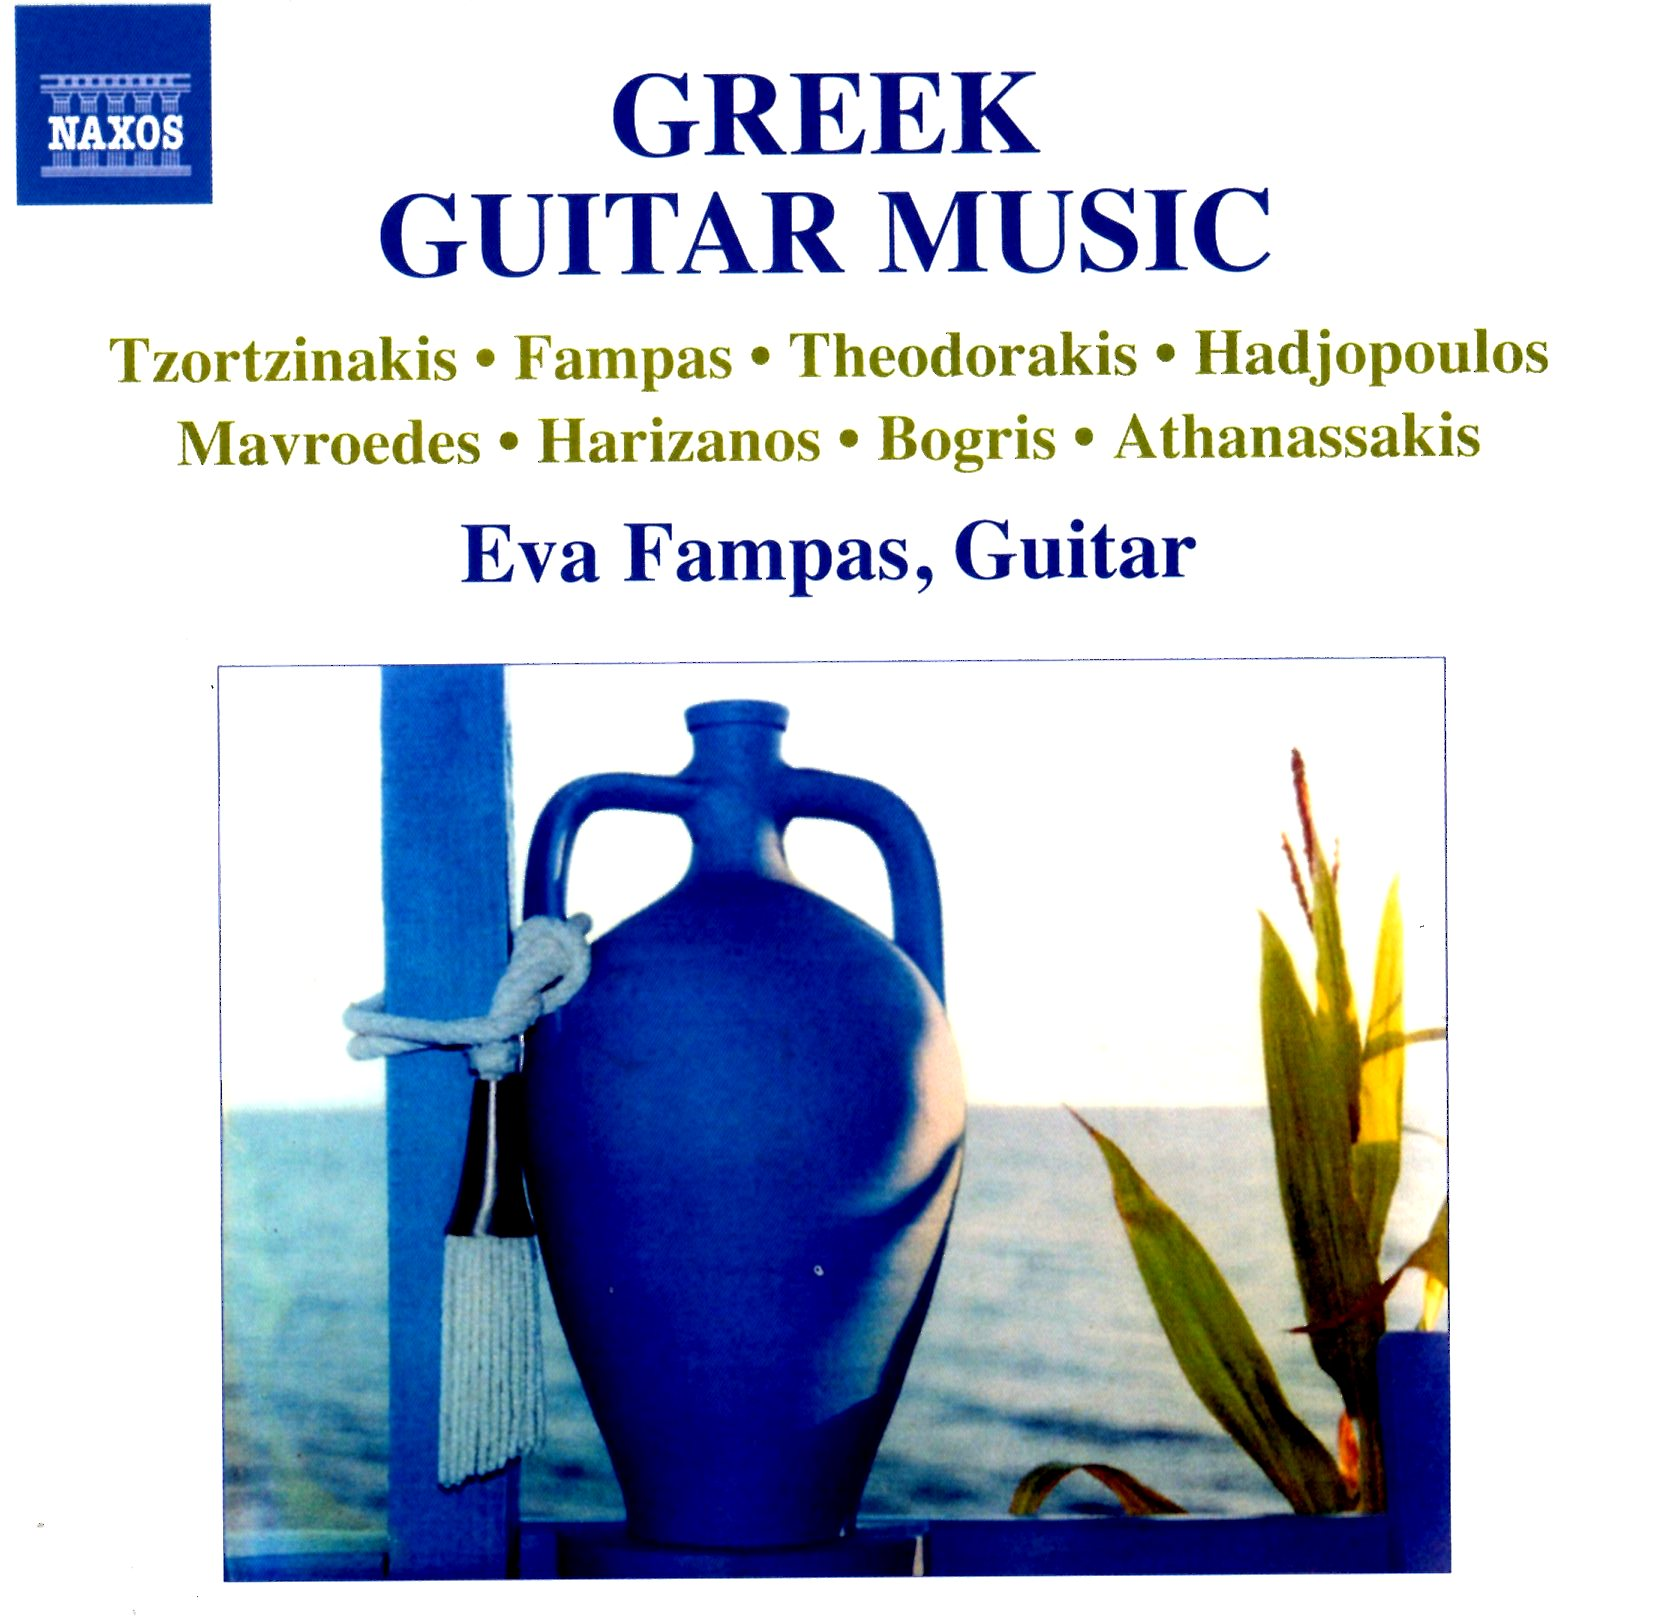 GREEK GUITAR MUSIC, Eva Fampas guitar / cd NAXOS